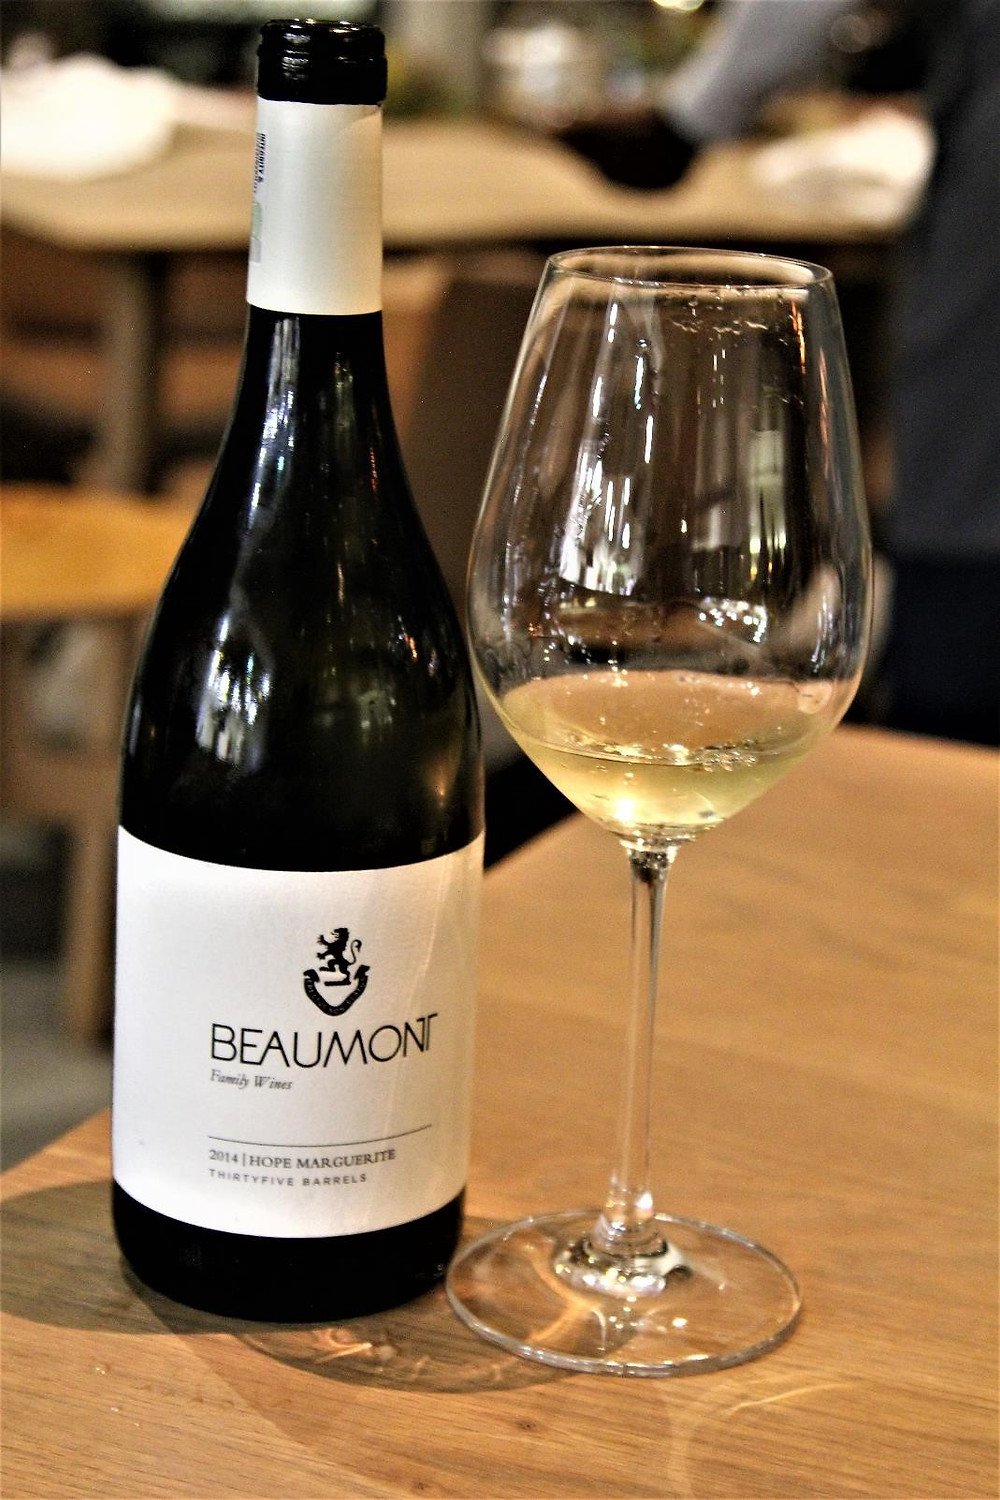 South Africa's Bot River Region - Beaumont Hope Marguerite Chenin Blanc - Luxury Wine Trails exclusive Cape Wineland vineyard tours